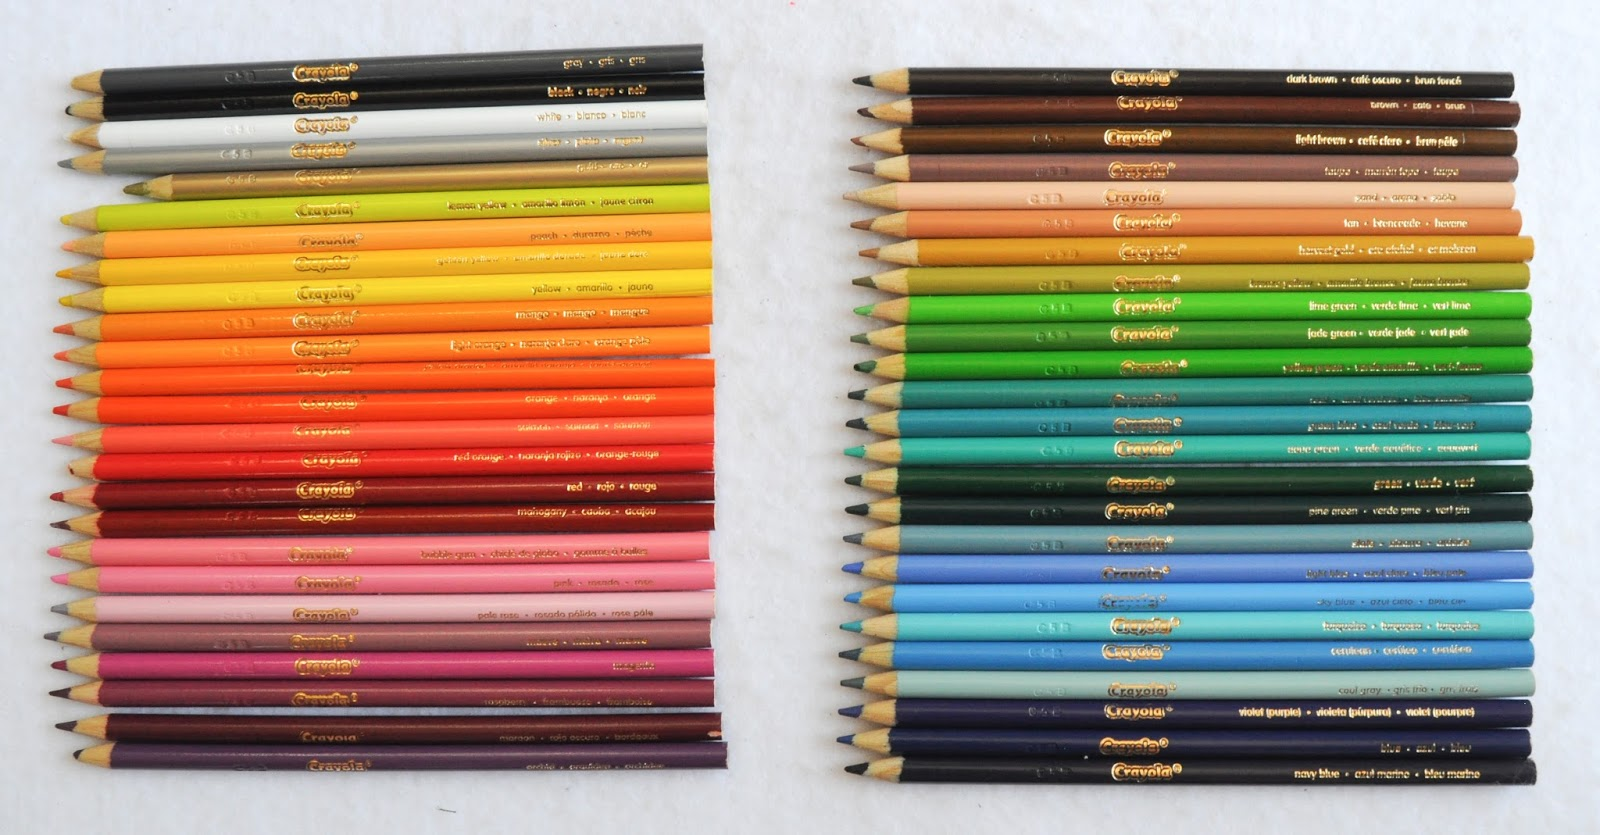 Crayola 50 Count Colored Pencils Whats Inside the Box Jennys